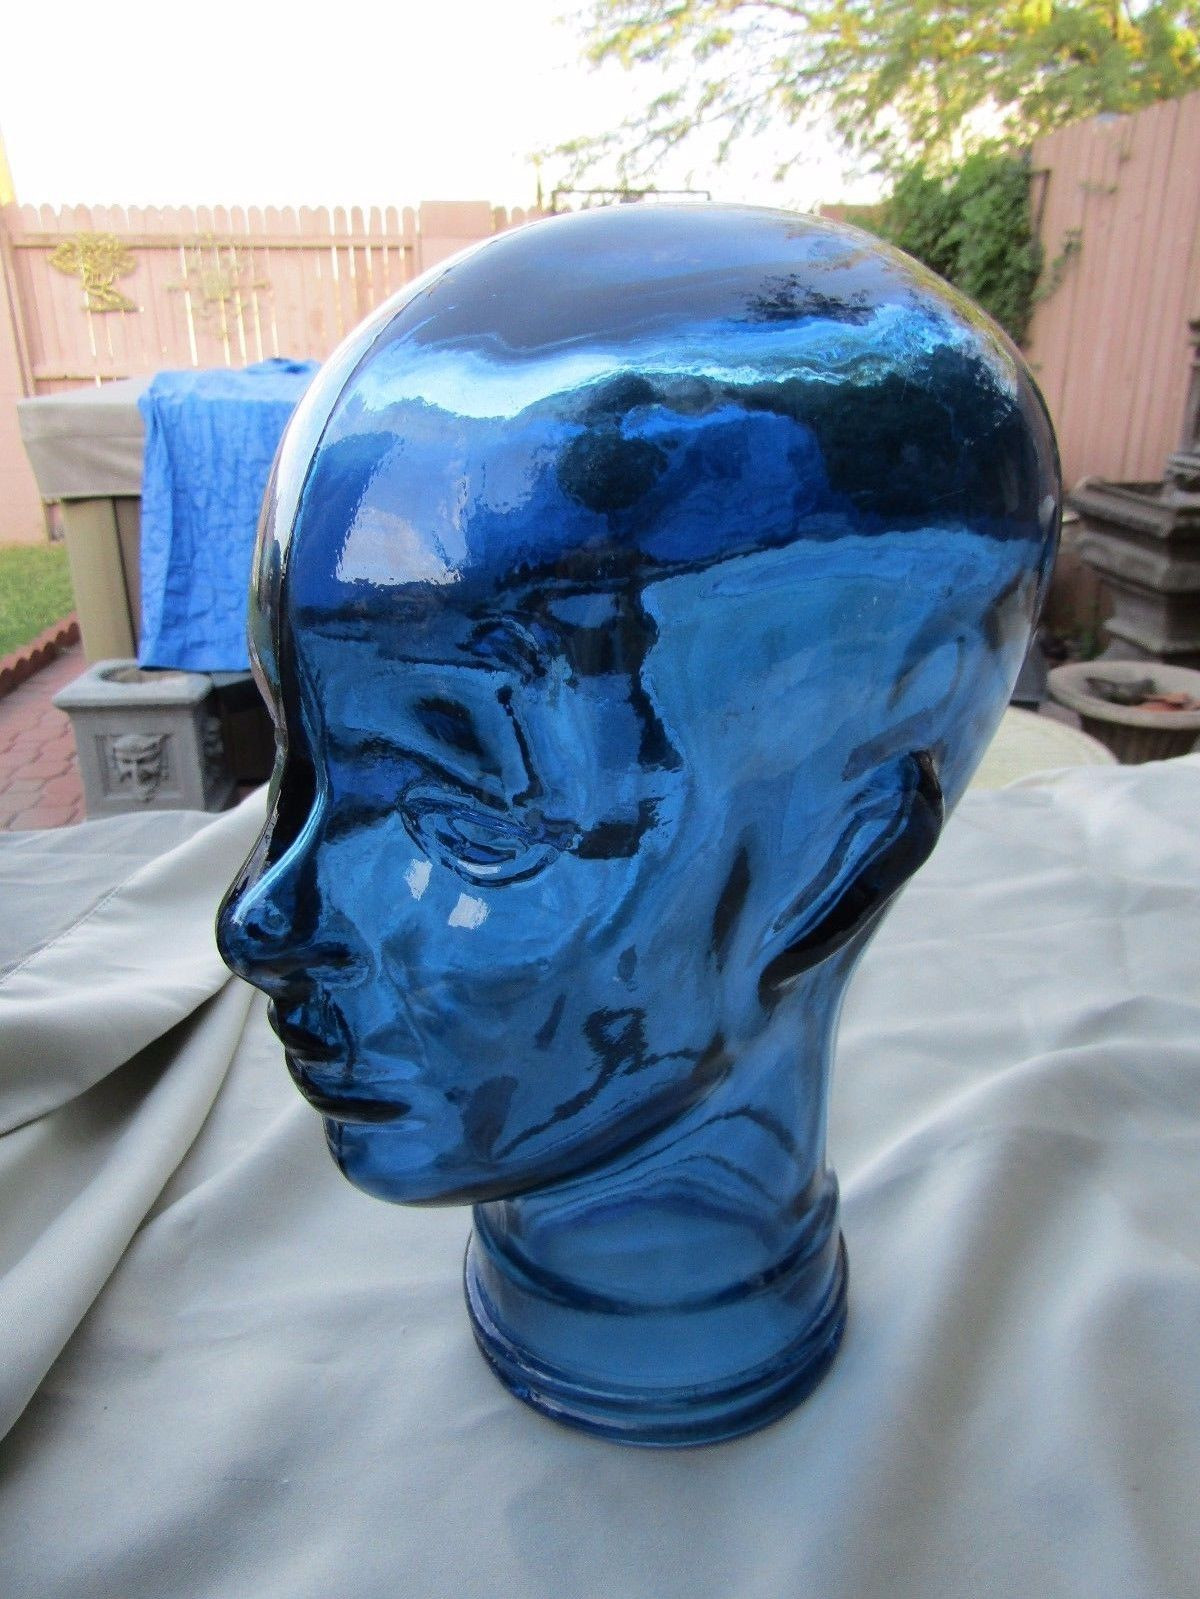 vidrios san miguel vases of vidrios san miguel large blue glass human head art glass 29 99 for vidrios san miguel large blue glass human head art glass 1 of 7 see more